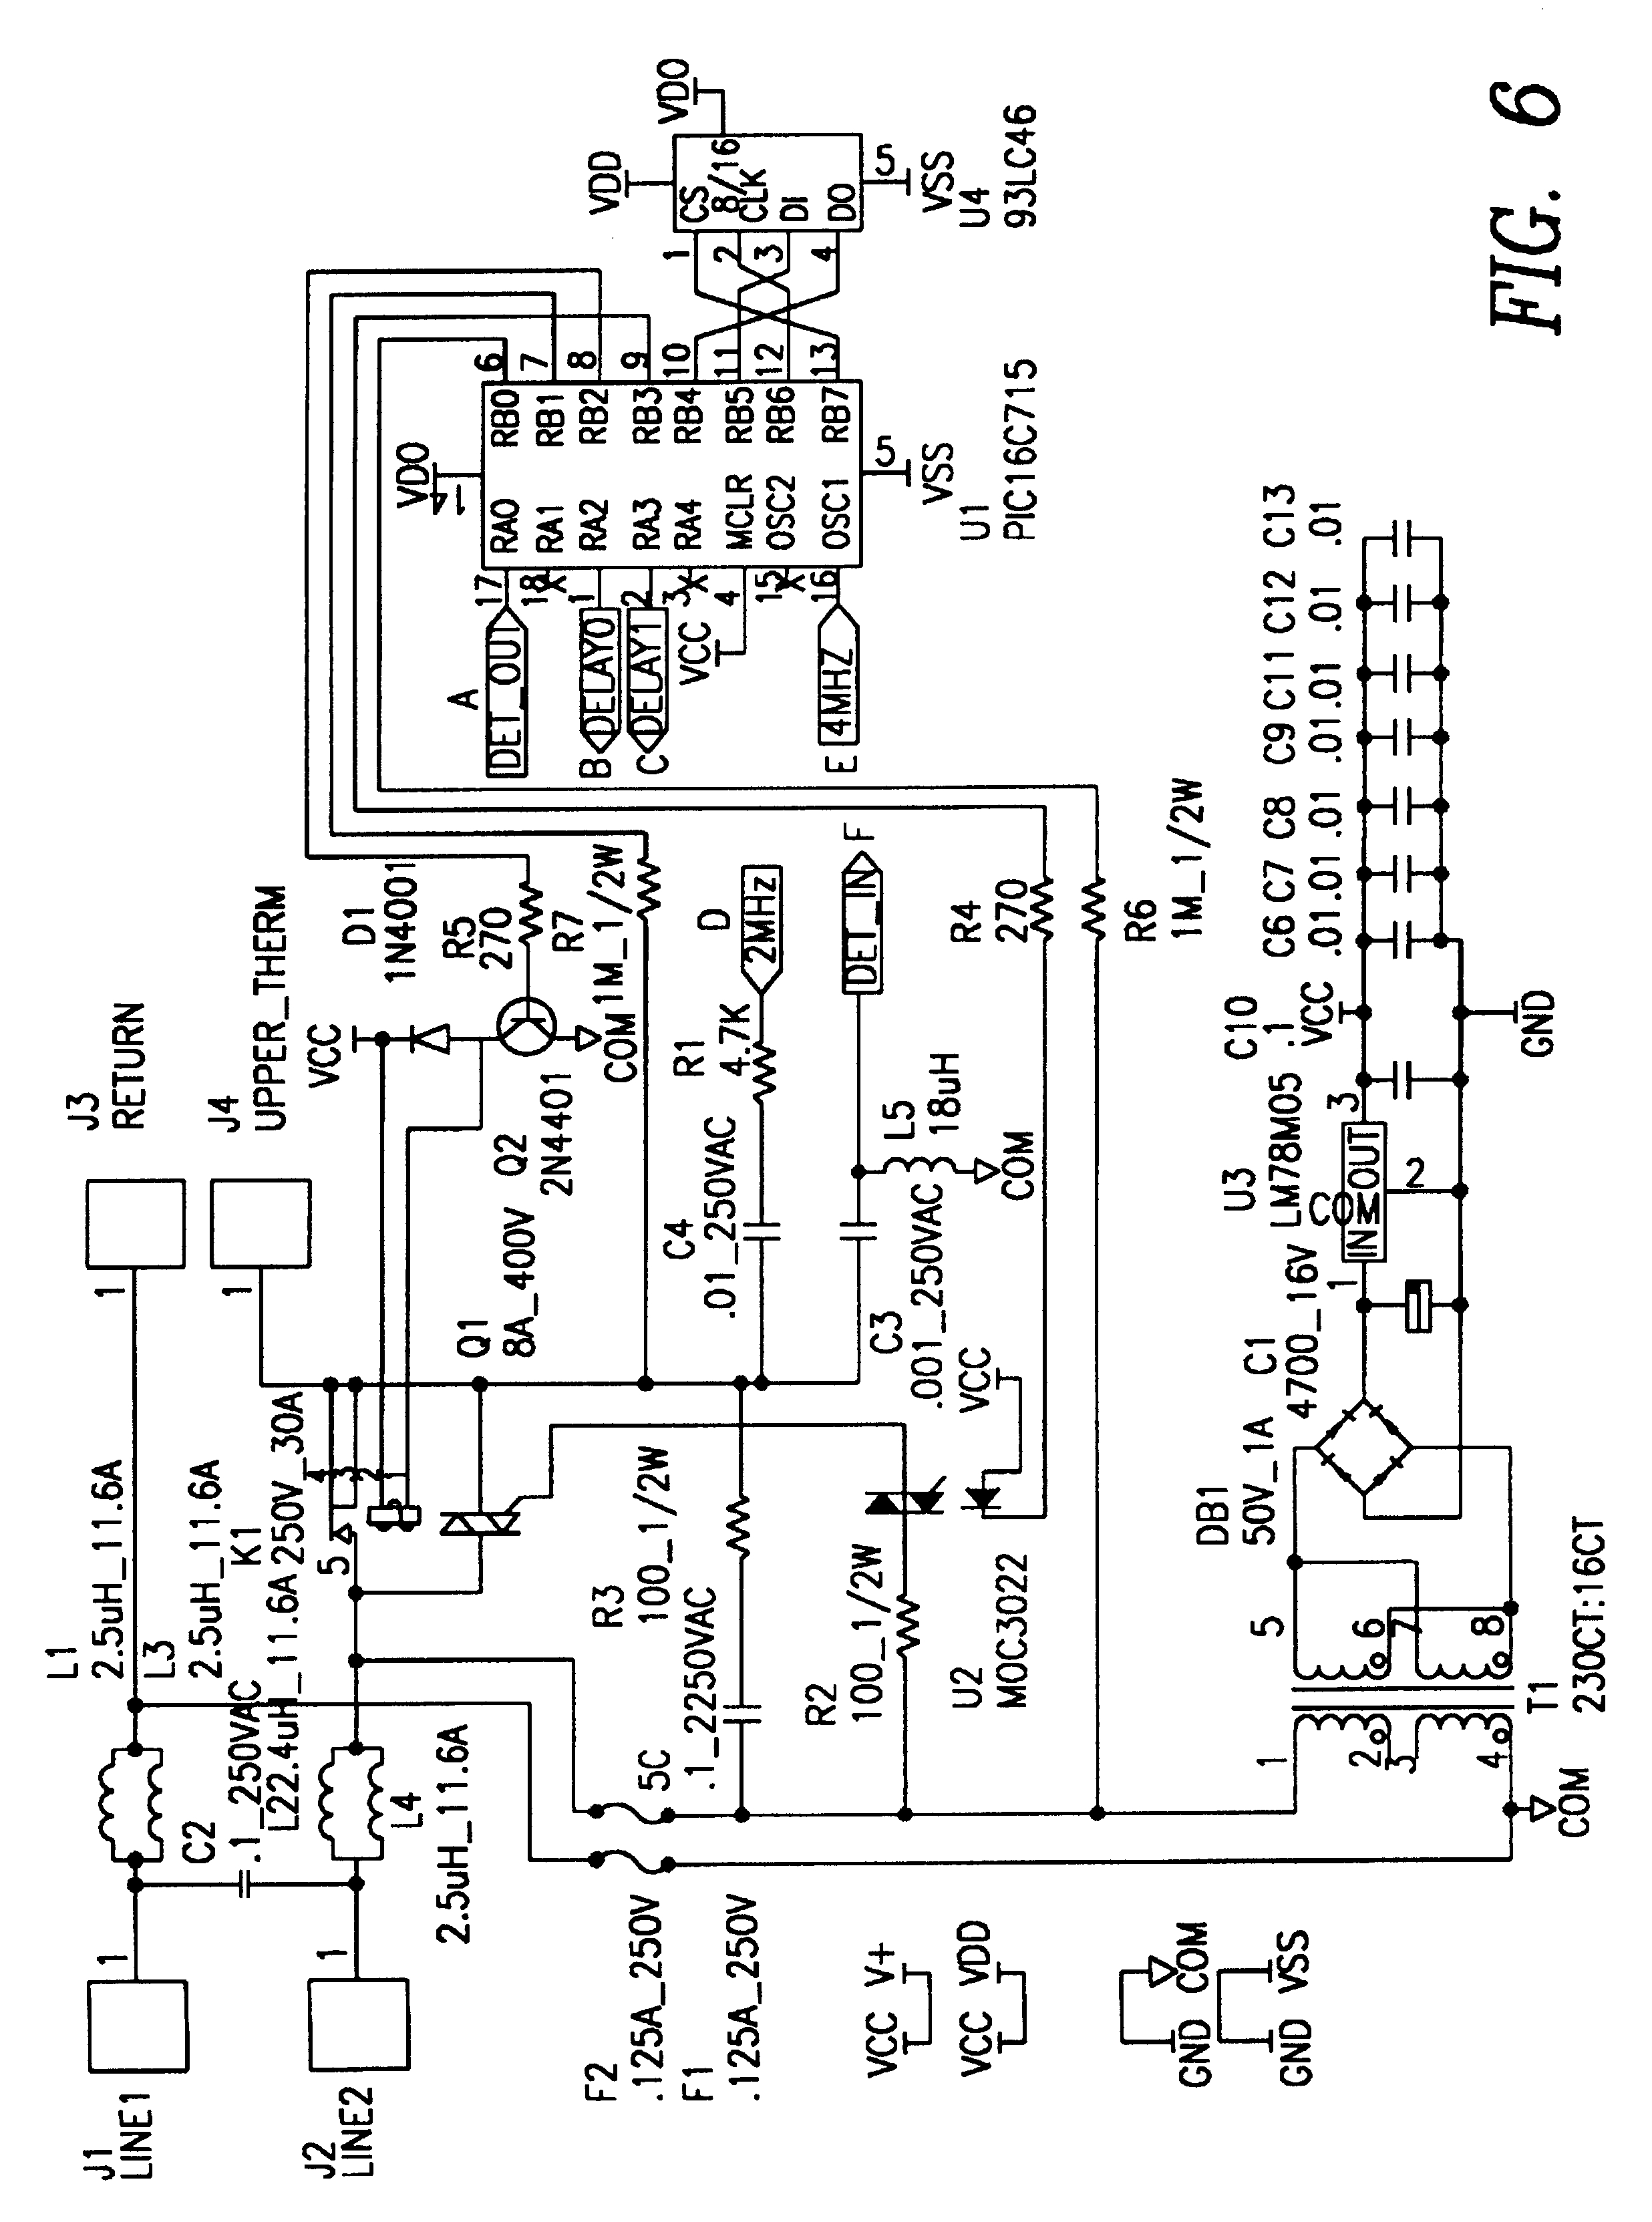 hatco food warmer wiring diagram Collection-Hatco Booster Heater Wiring Diagram Auto Electrical Wiring Diagram • Hatco Booster Heater Parts Manual 17-s